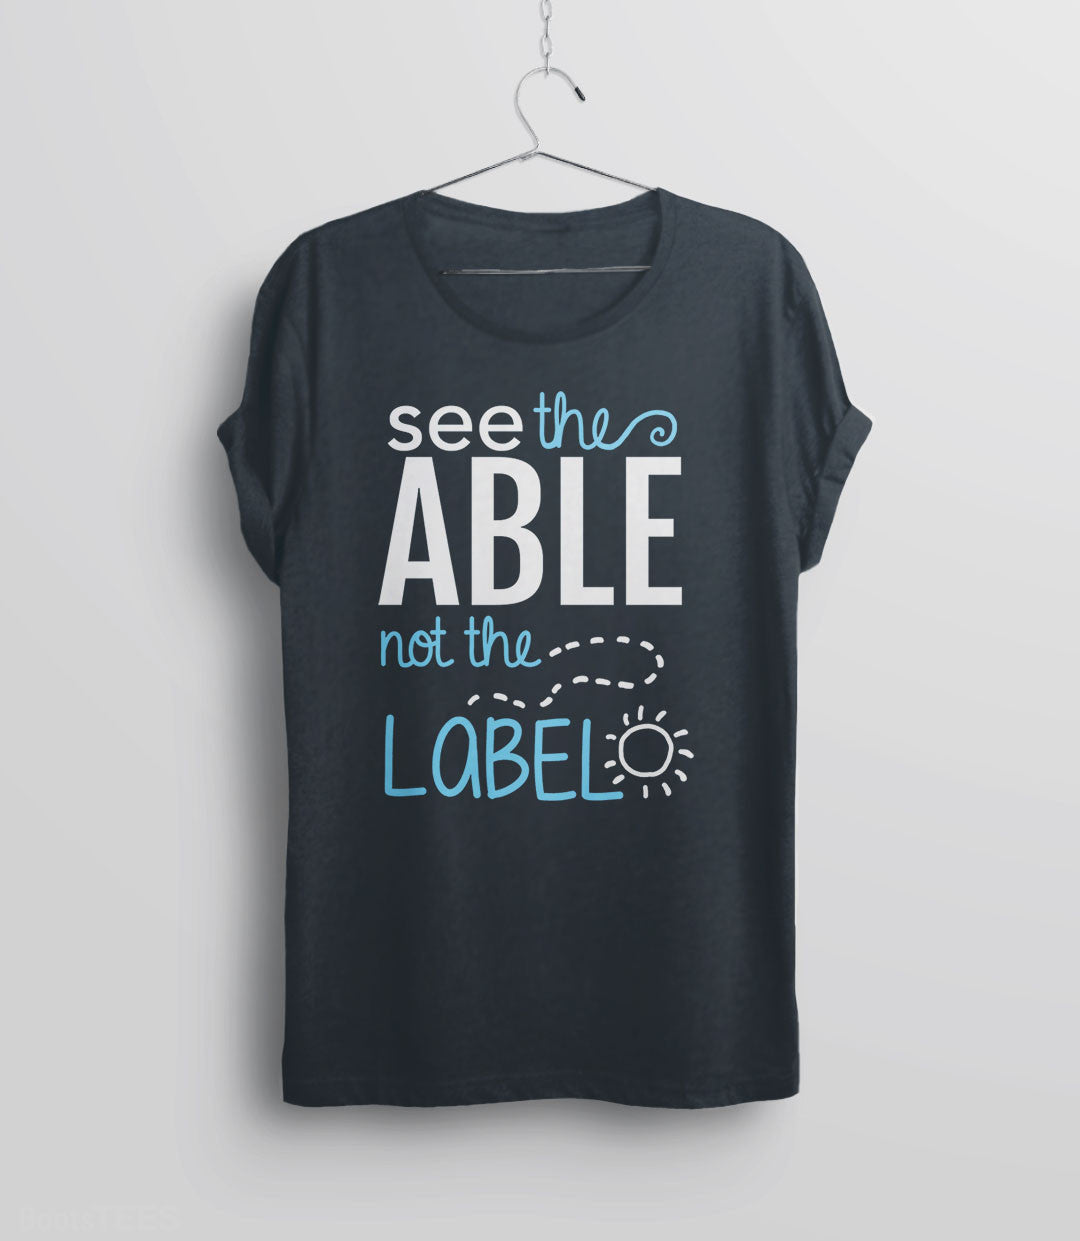 Cute Autism T-Shirt: see the able not the label - gray unisex tee